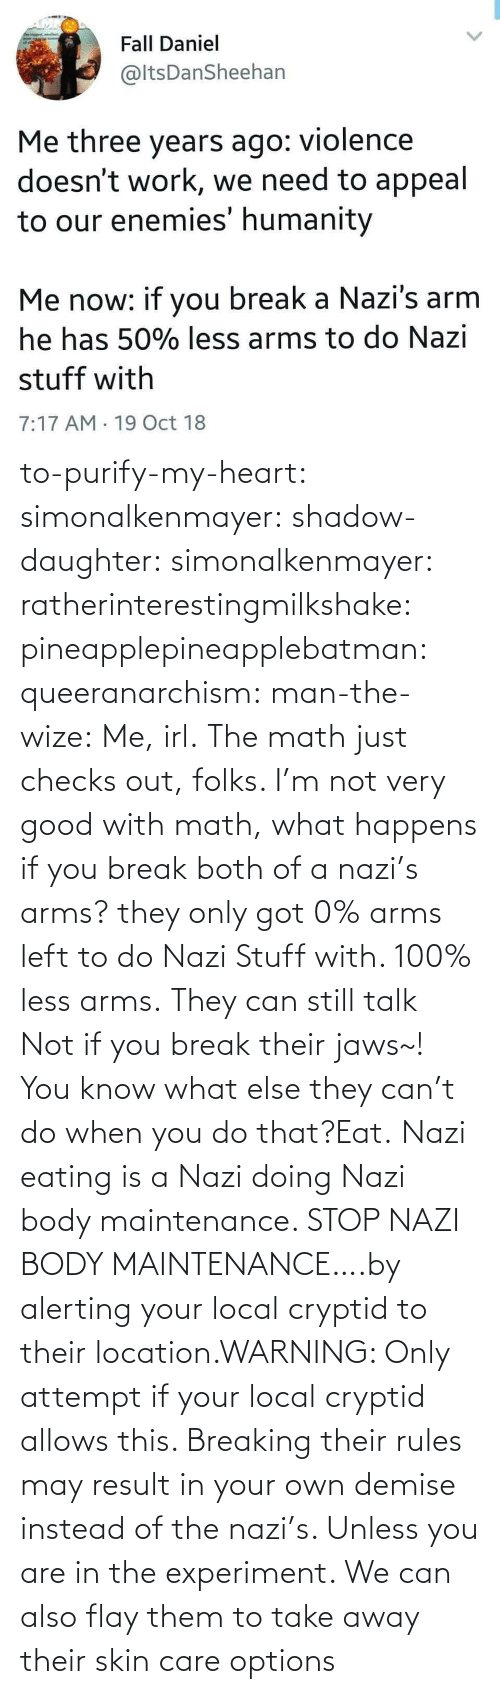 Very Good: to-purify-my-heart:  simonalkenmayer:  shadow-daughter: simonalkenmayer:  ratherinterestingmilkshake:  pineapplepineapplebatman:  queeranarchism:  man-the-wize: Me, irl. The math just checks out, folks.     I'm not very good with math, what happens if you break both of a nazi's arms?  they only got 0% arms left to do Nazi Stuff with. 100% less arms.  They can still talk  Not if you break their jaws~!  You know what else they can't do when you do that?Eat.   Nazi eating is a Nazi doing Nazi body maintenance. STOP NAZI BODY MAINTENANCE….by alerting your local cryptid to their location.WARNING: Only attempt if your local cryptid allows this. Breaking their rules may result in your own demise instead of the nazi's. Unless you are in the experiment.    We can also flay them to take away their skin care options